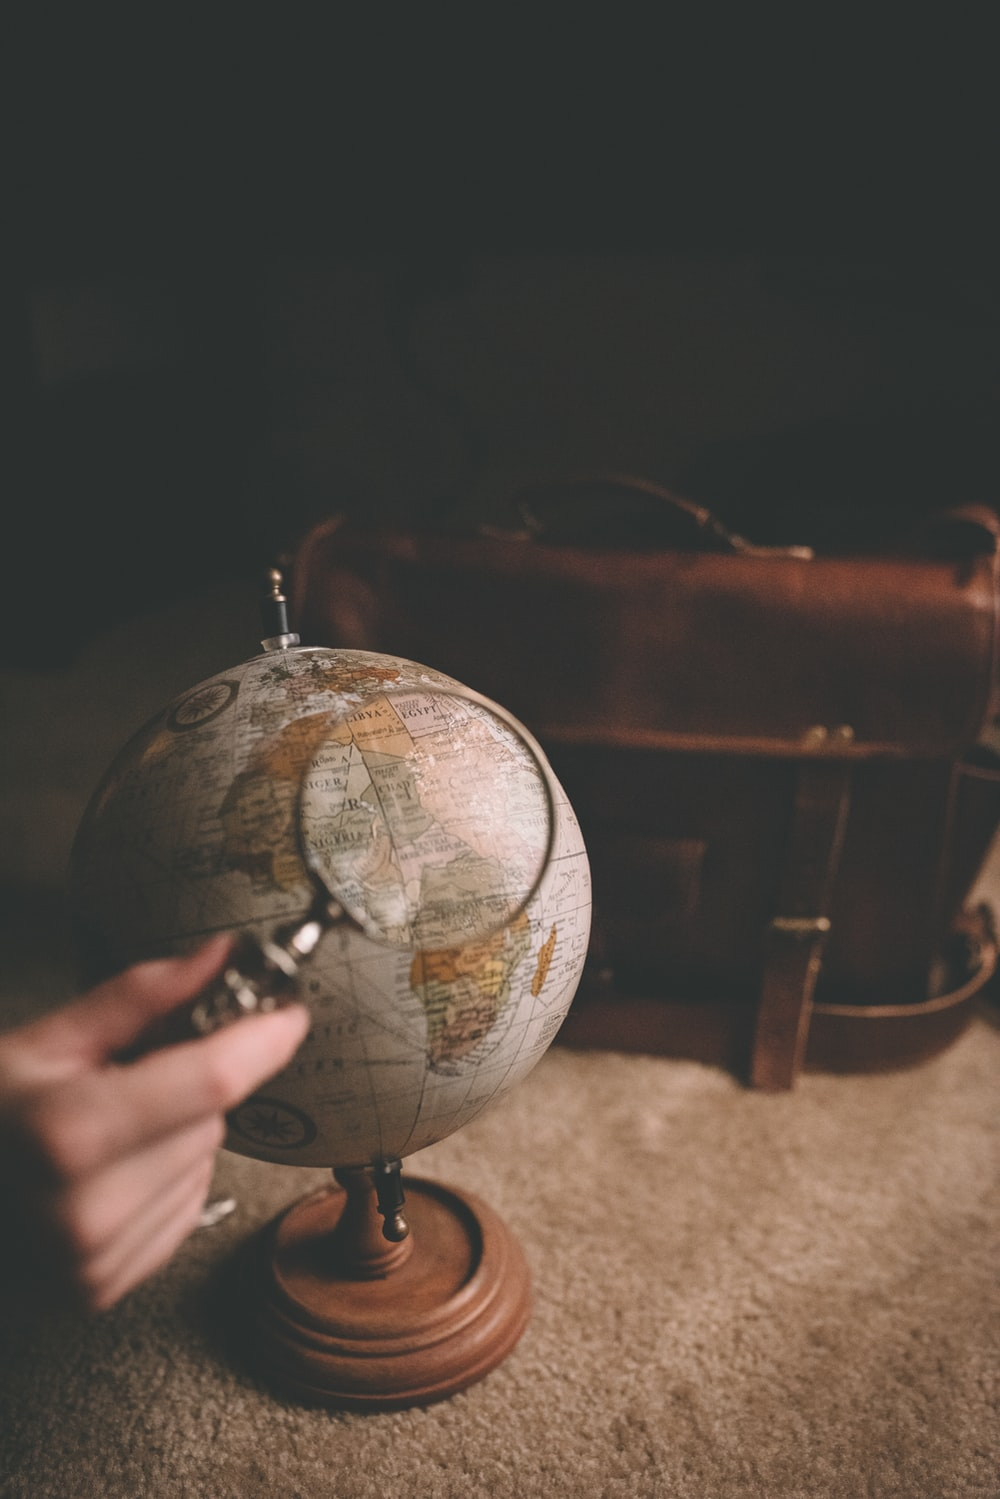 person holding magnifying glass near desk globe